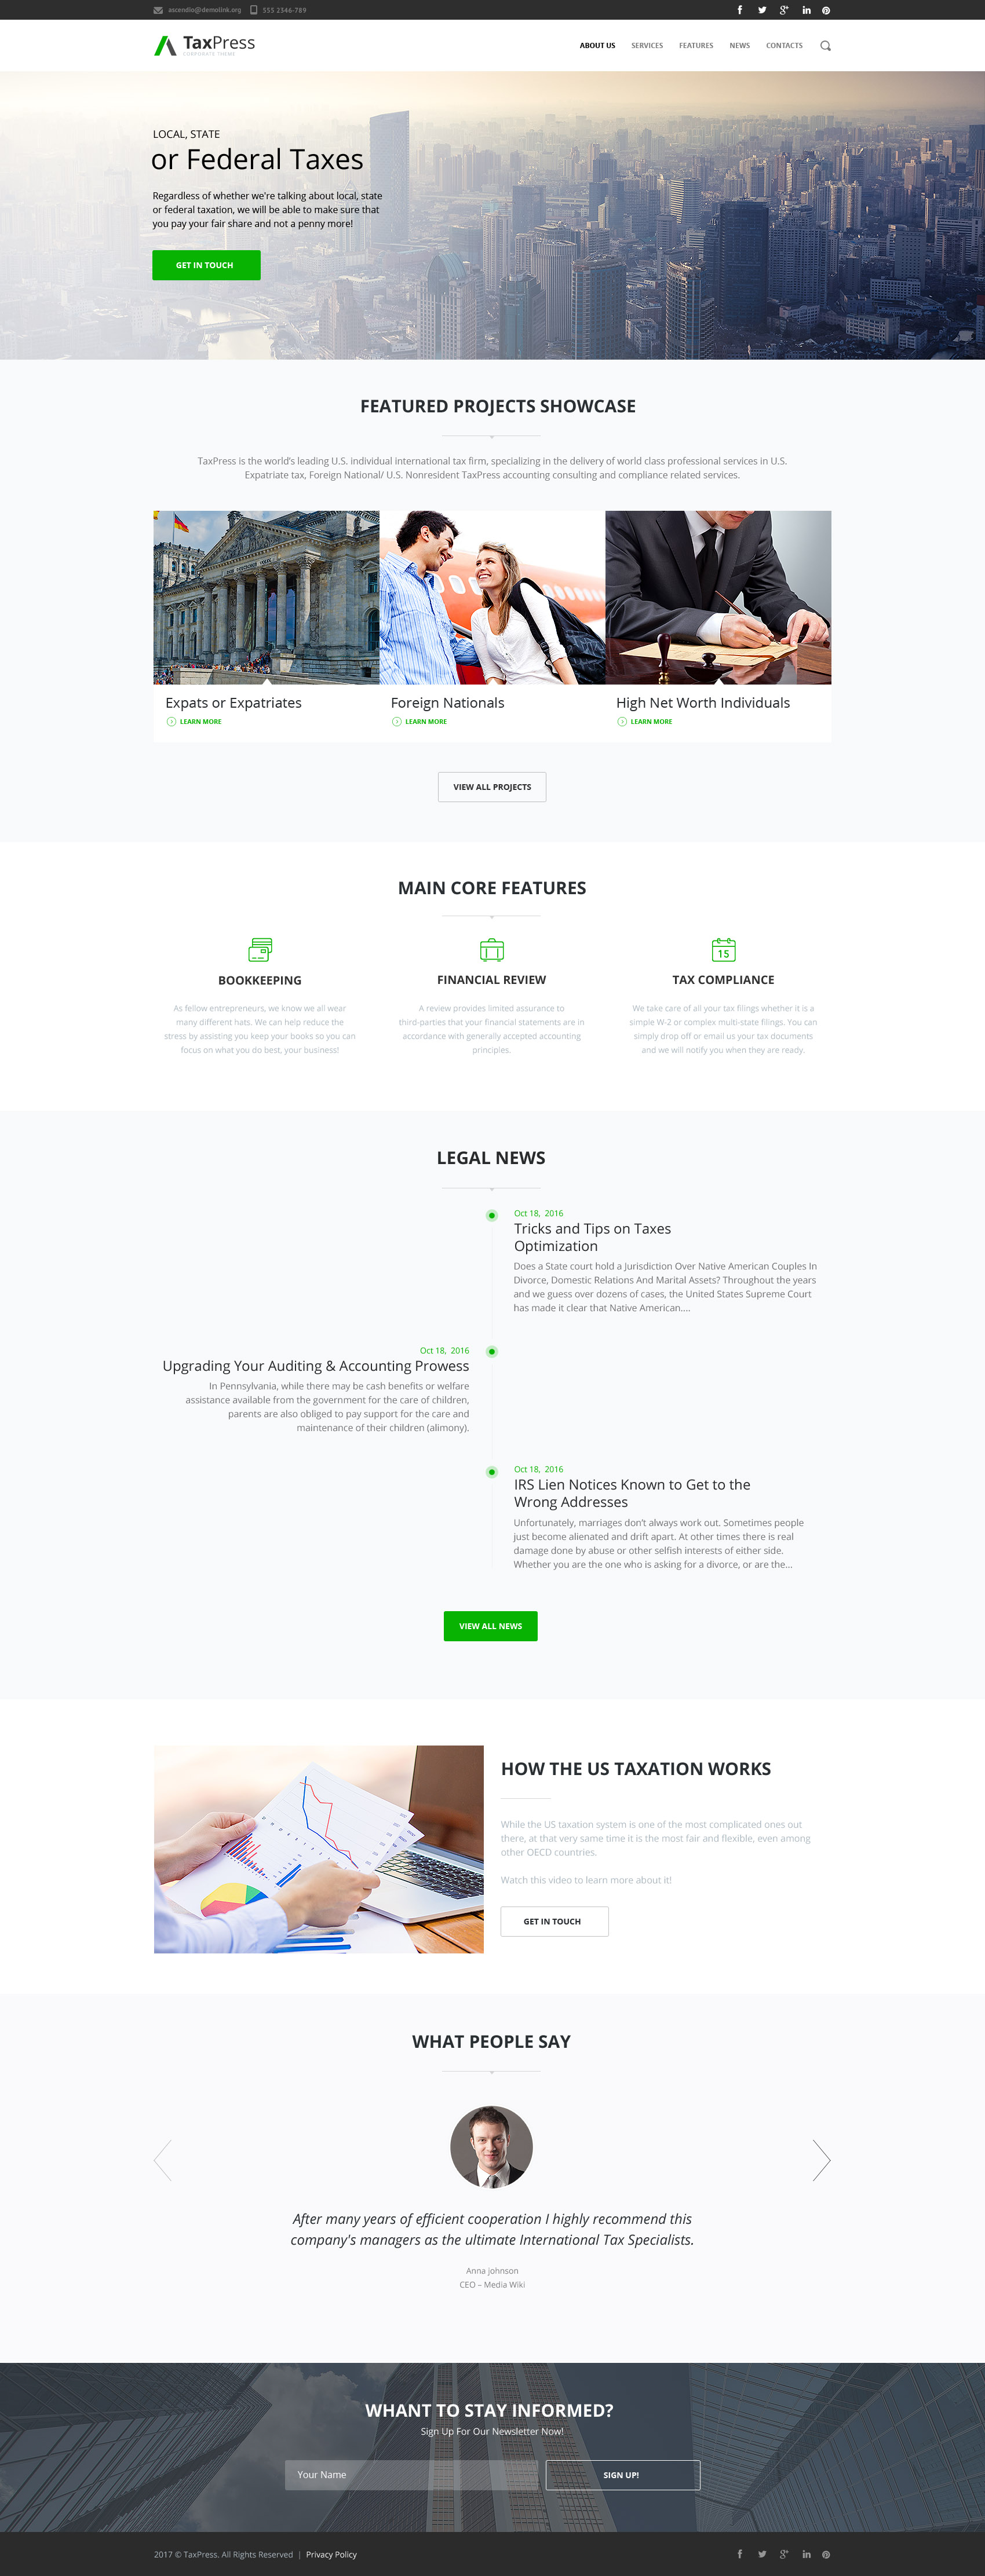 Website Design Template 63401 - automate flow services flex profile principles web products technol